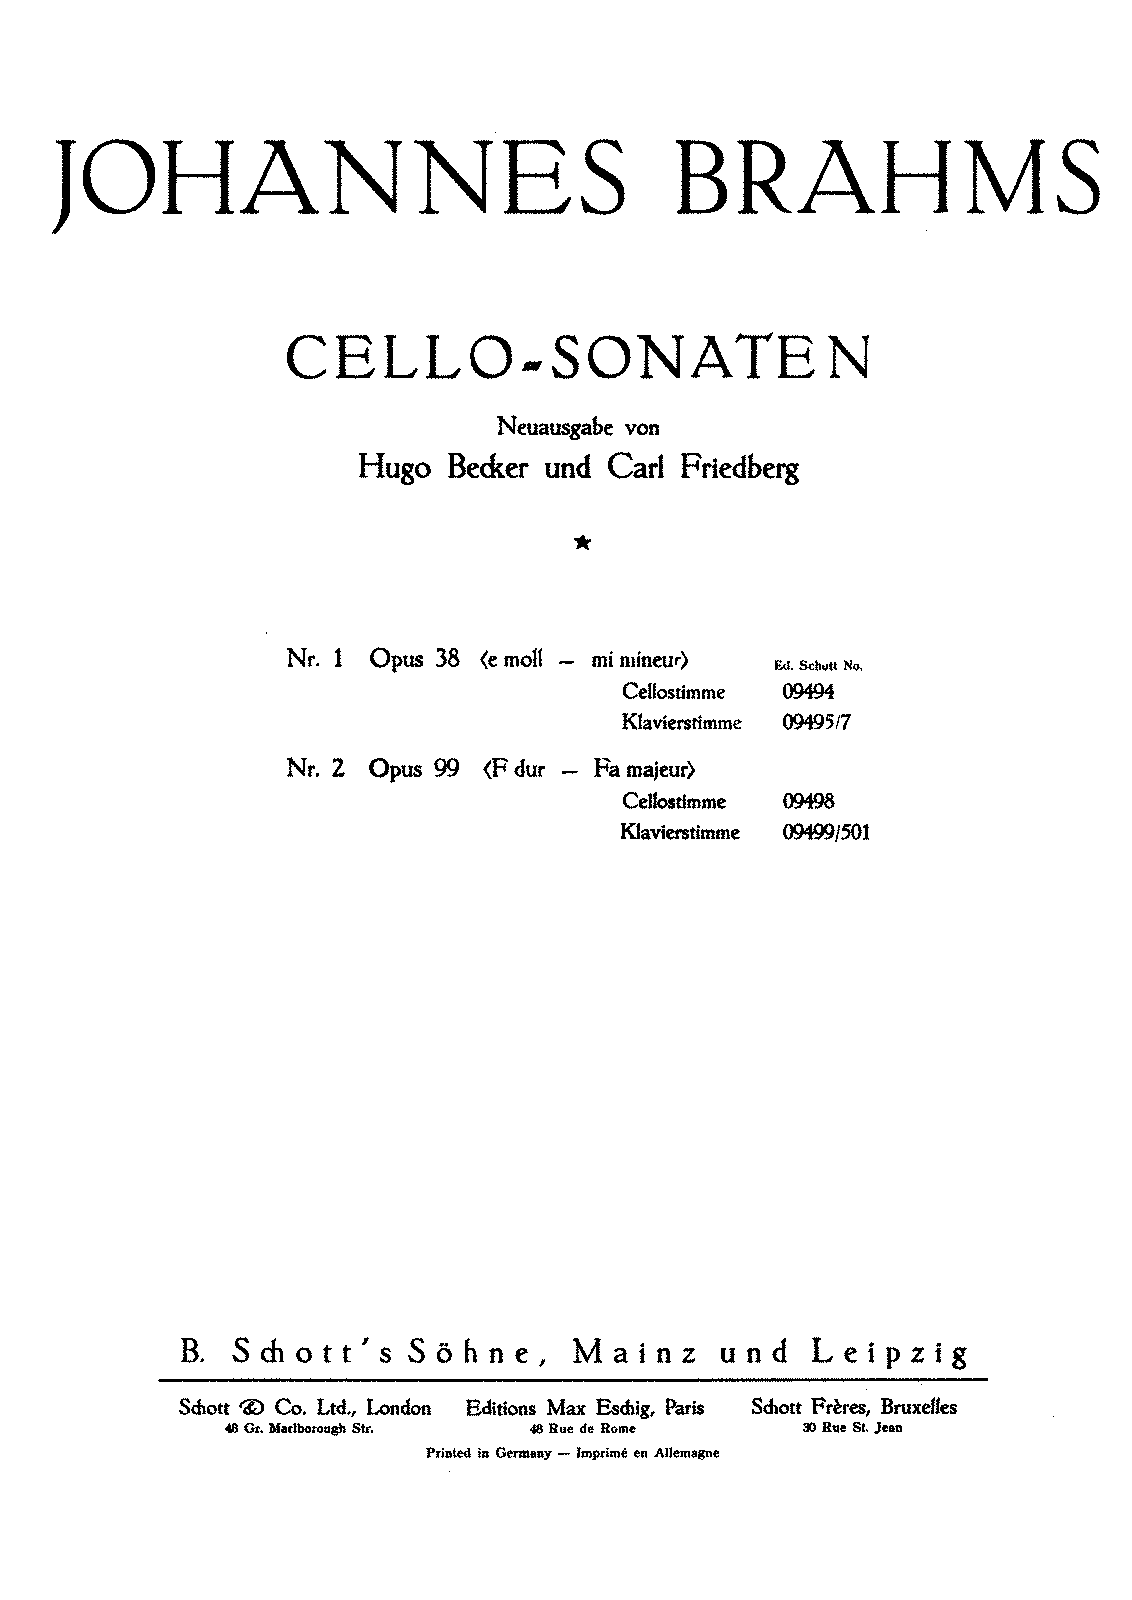 PMLP43440-Brahms - Cello Sonata No1 in E minor Op38 (Becker Schott) piano.pdf